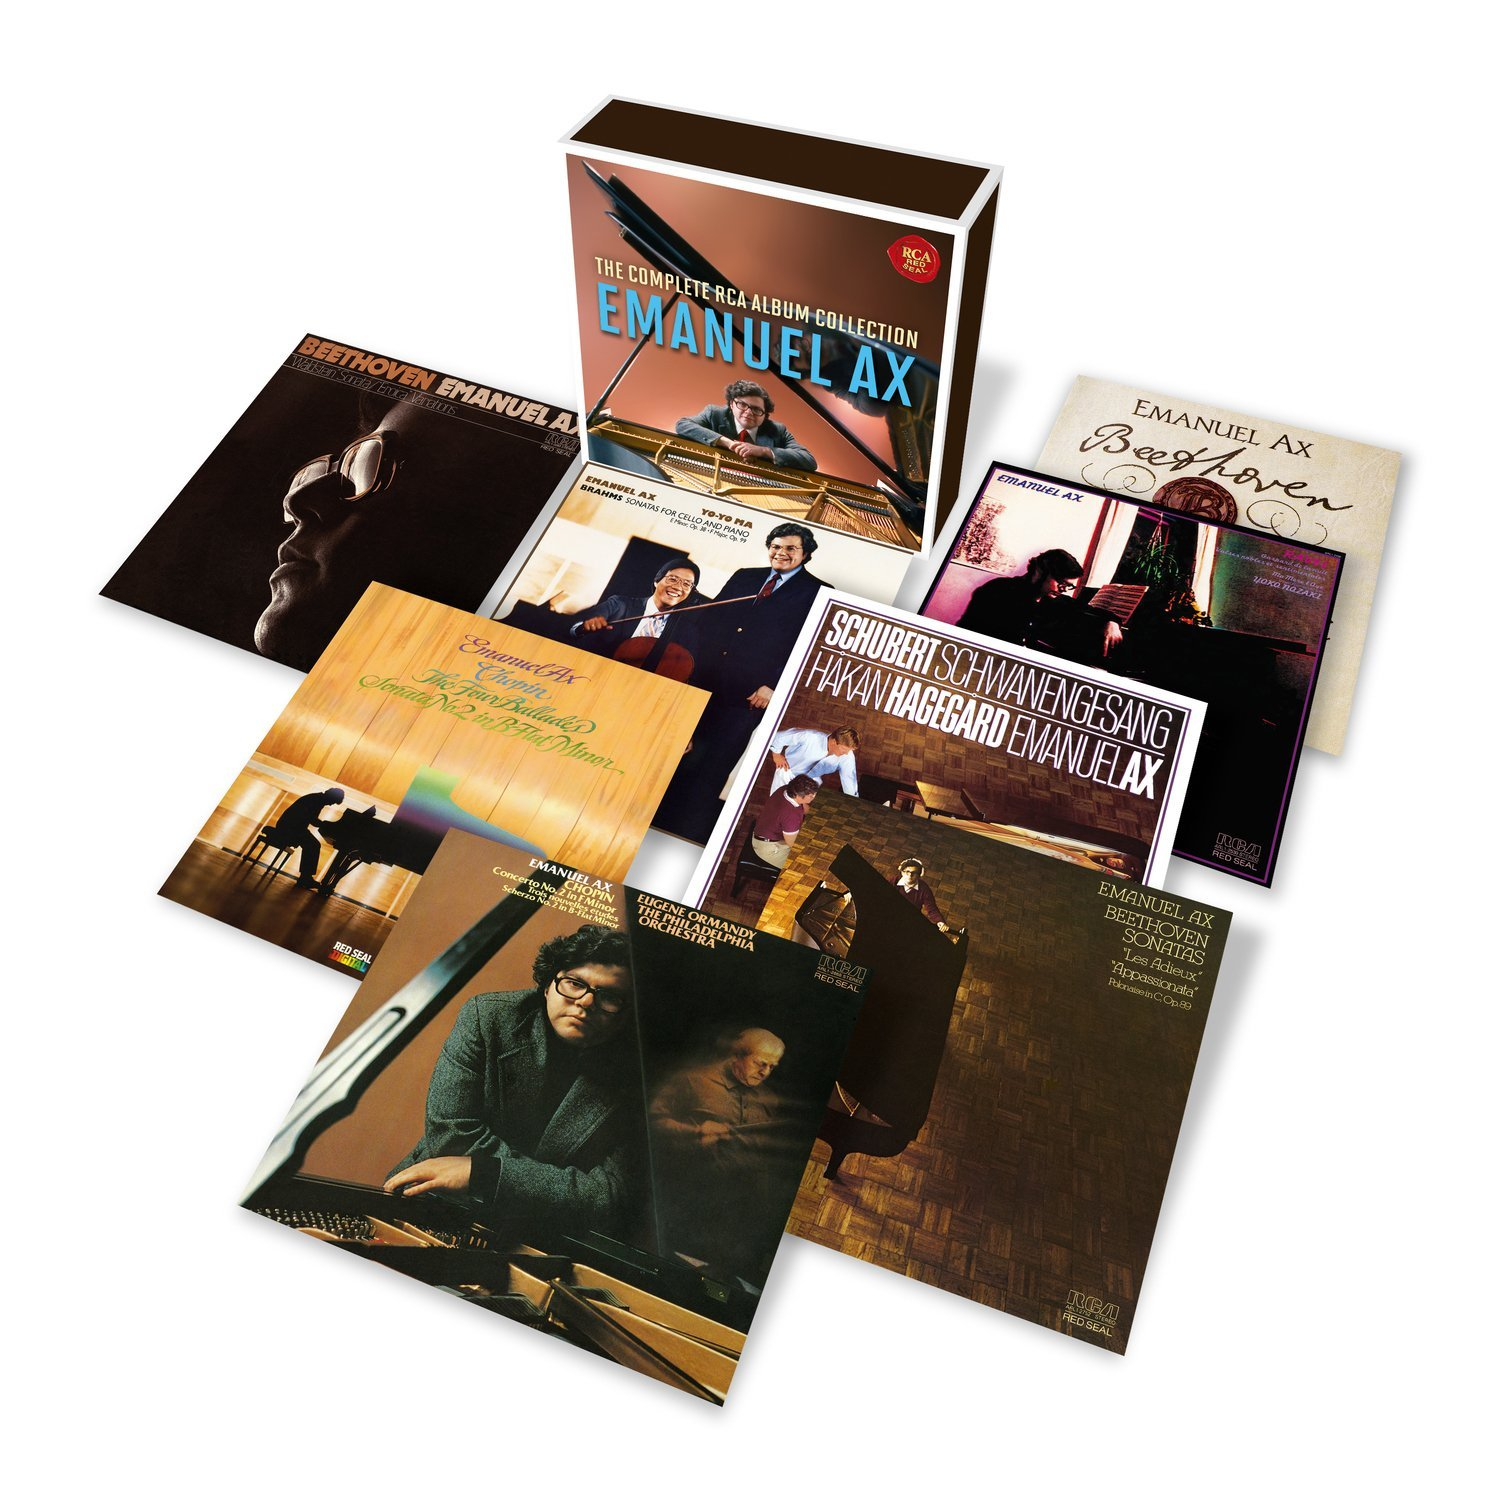 CD : Emanuel Ax - Complete Rca Album Collection (CD)